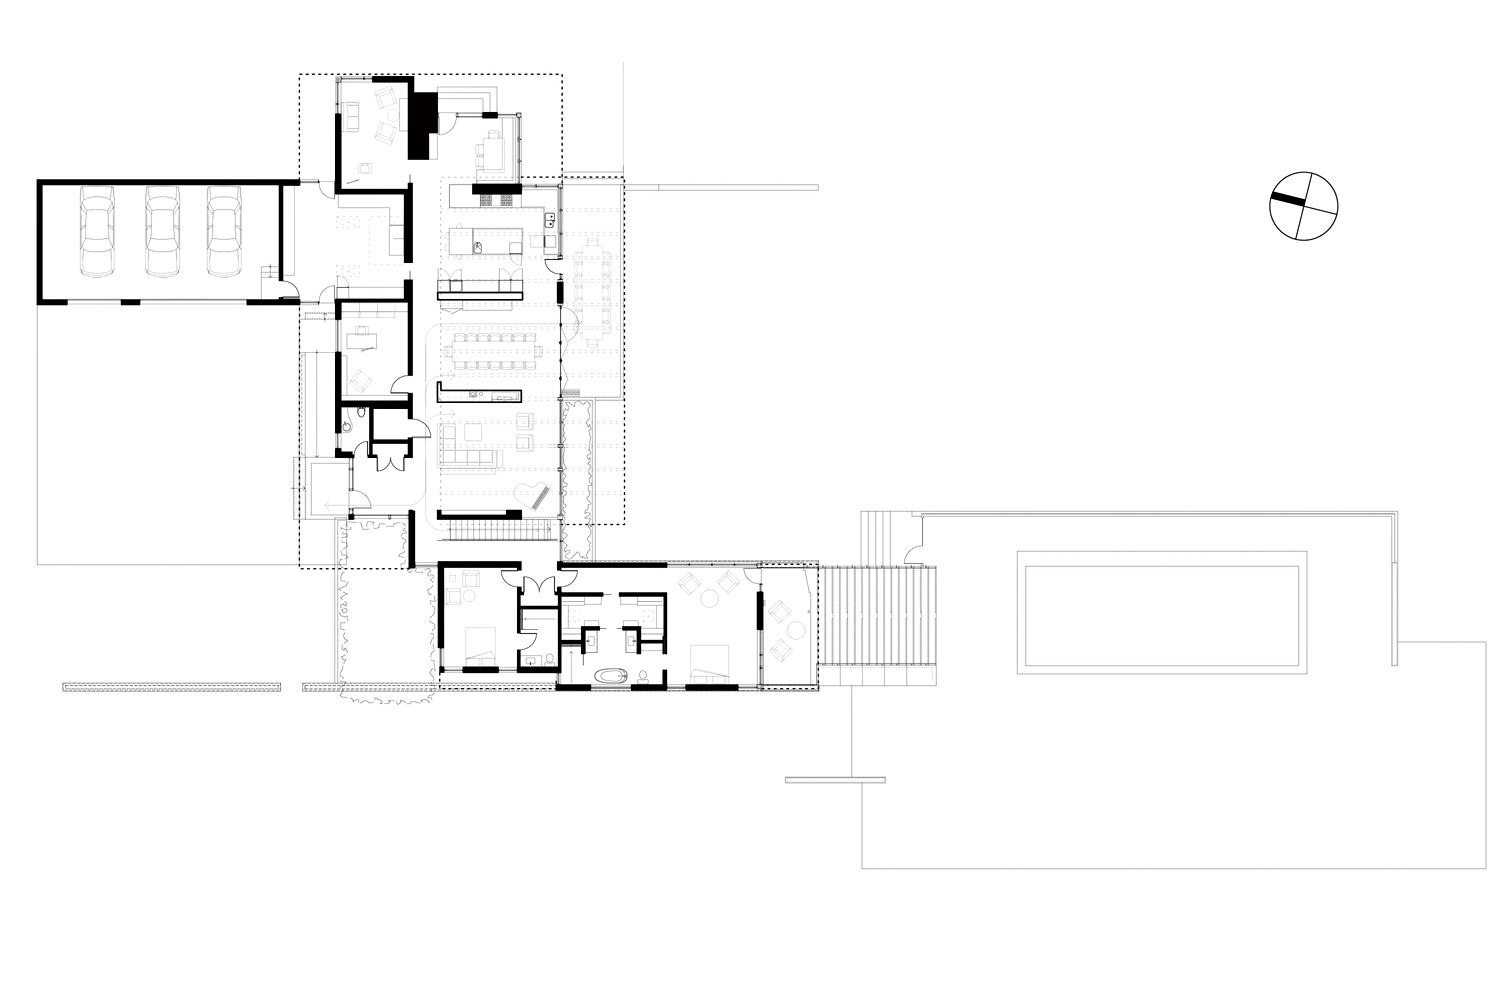 Floor Plan - Millgrove House Luxury Residence - Hamilton, ON, Canada